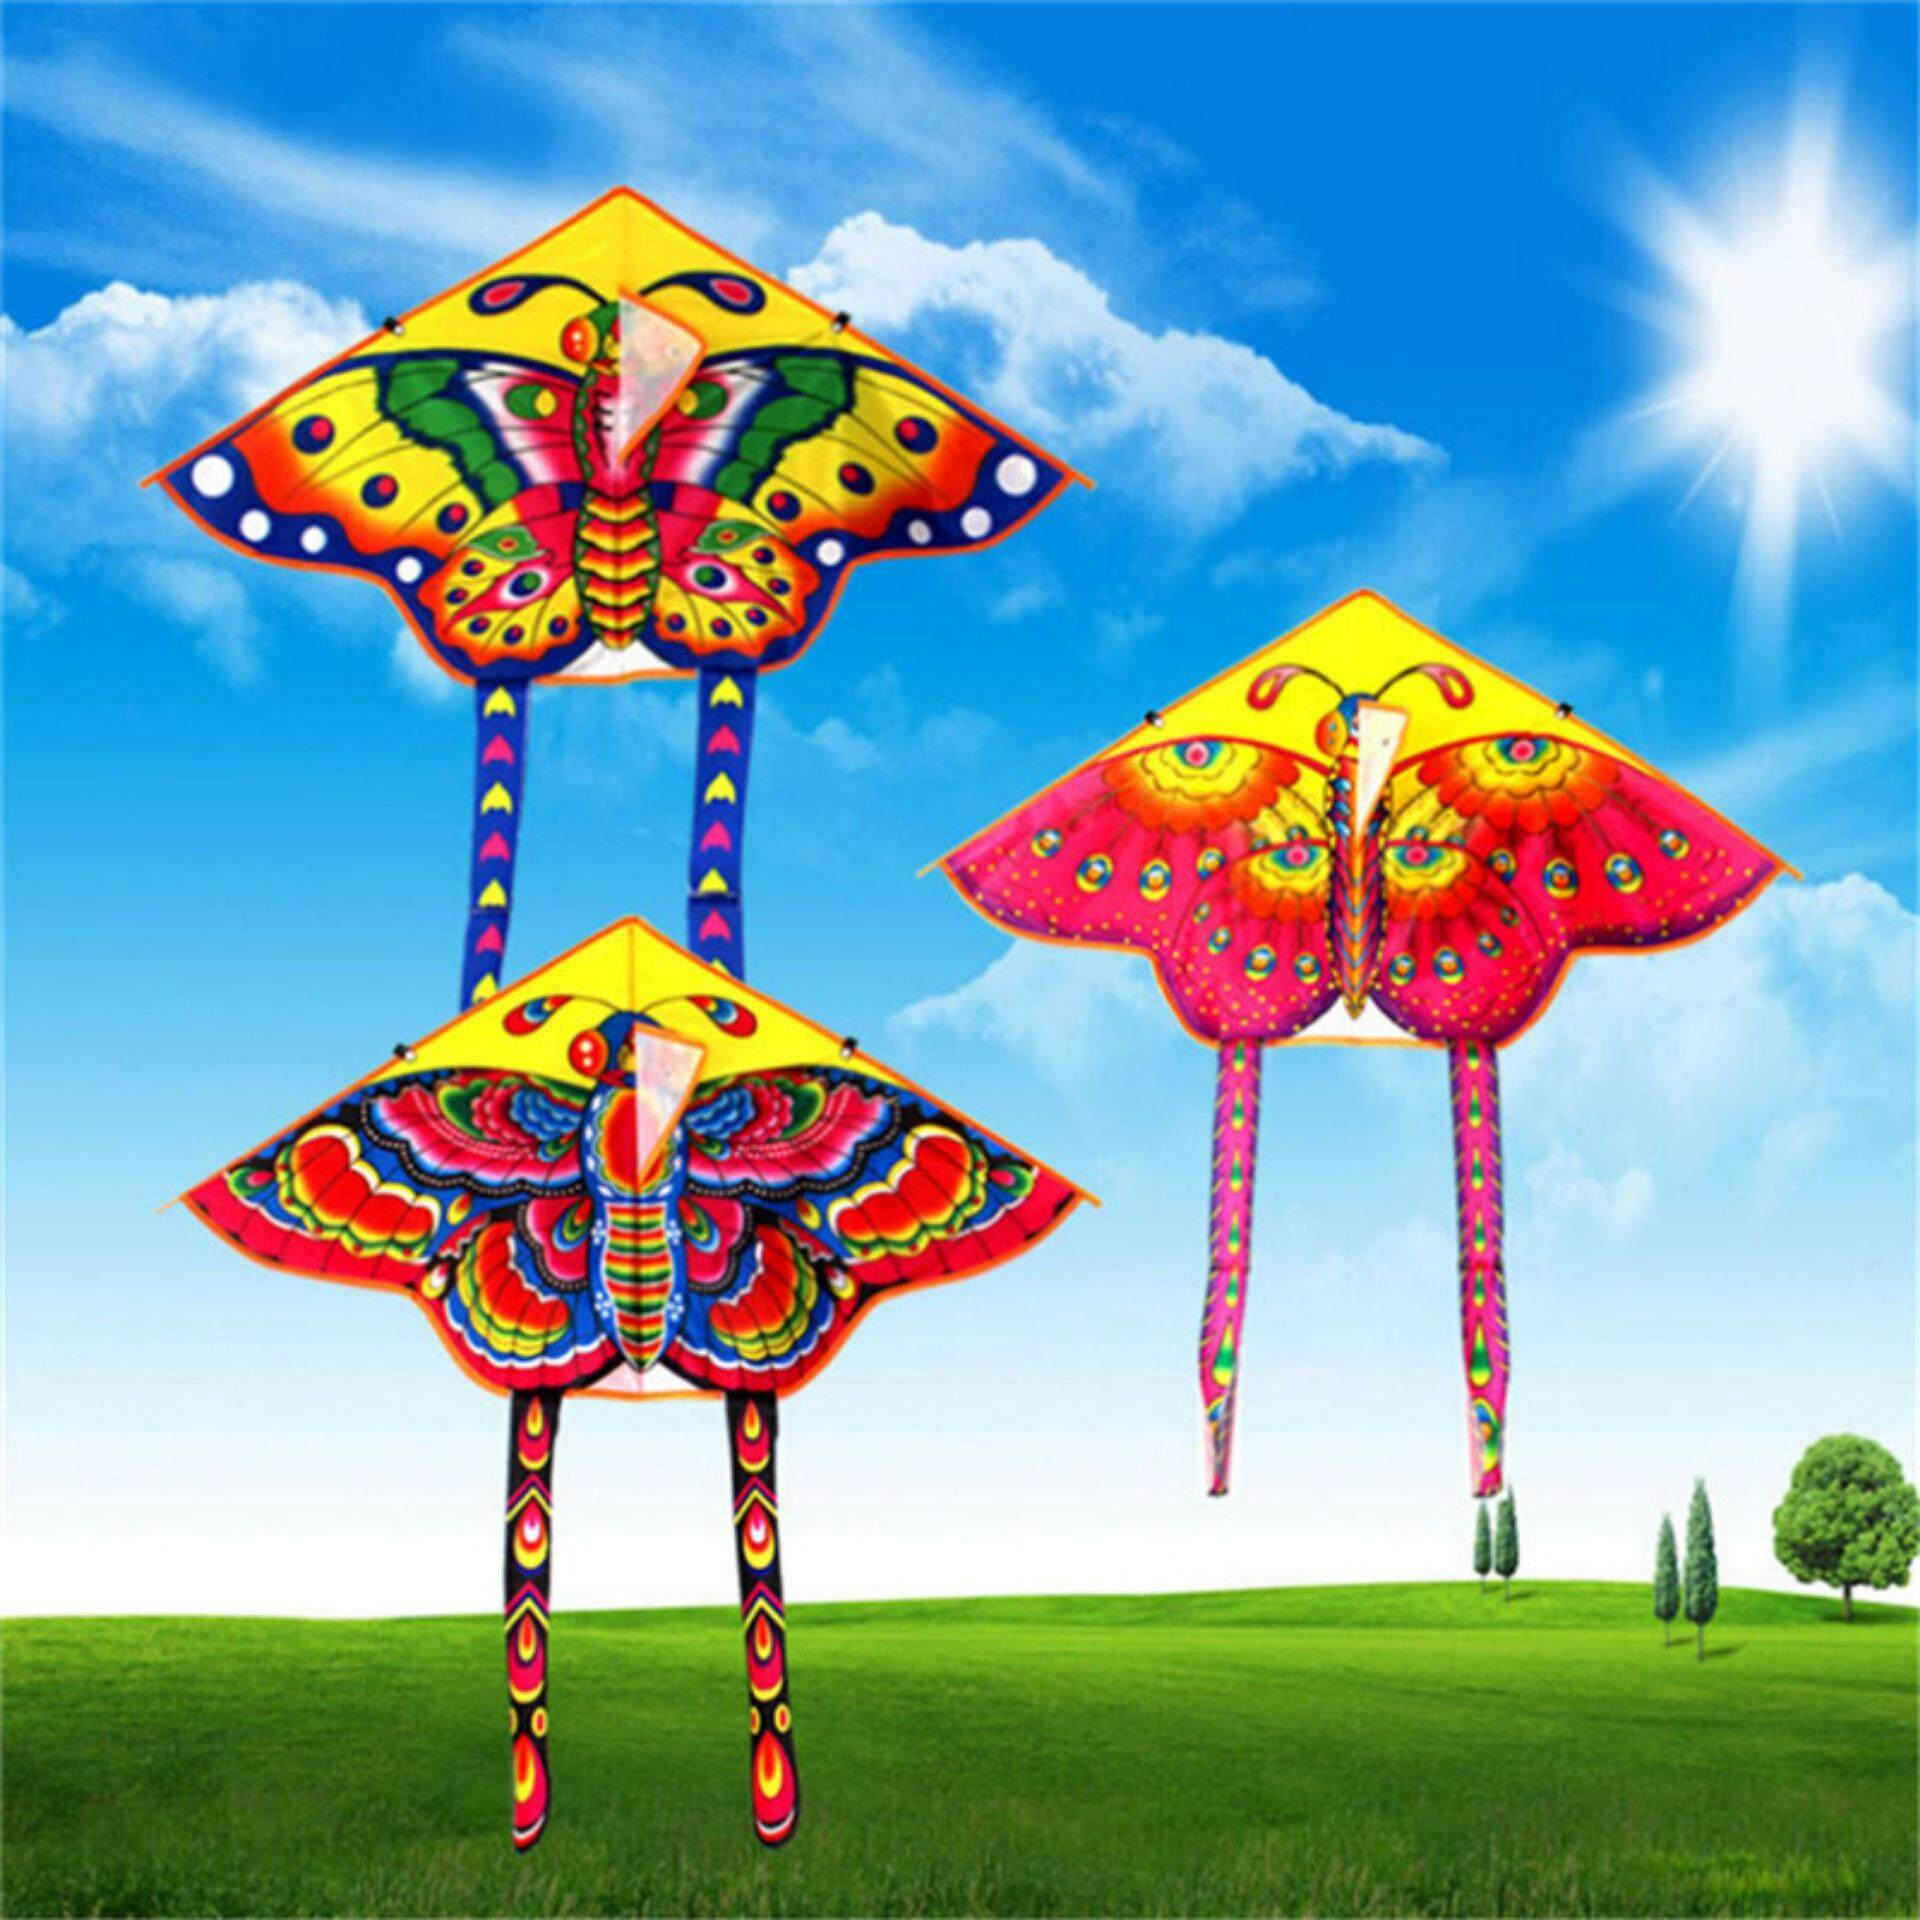 Butterfly Printed Long Tail Kite Children Kids Outdoor Garden Fun Toys By Blossom Mall.